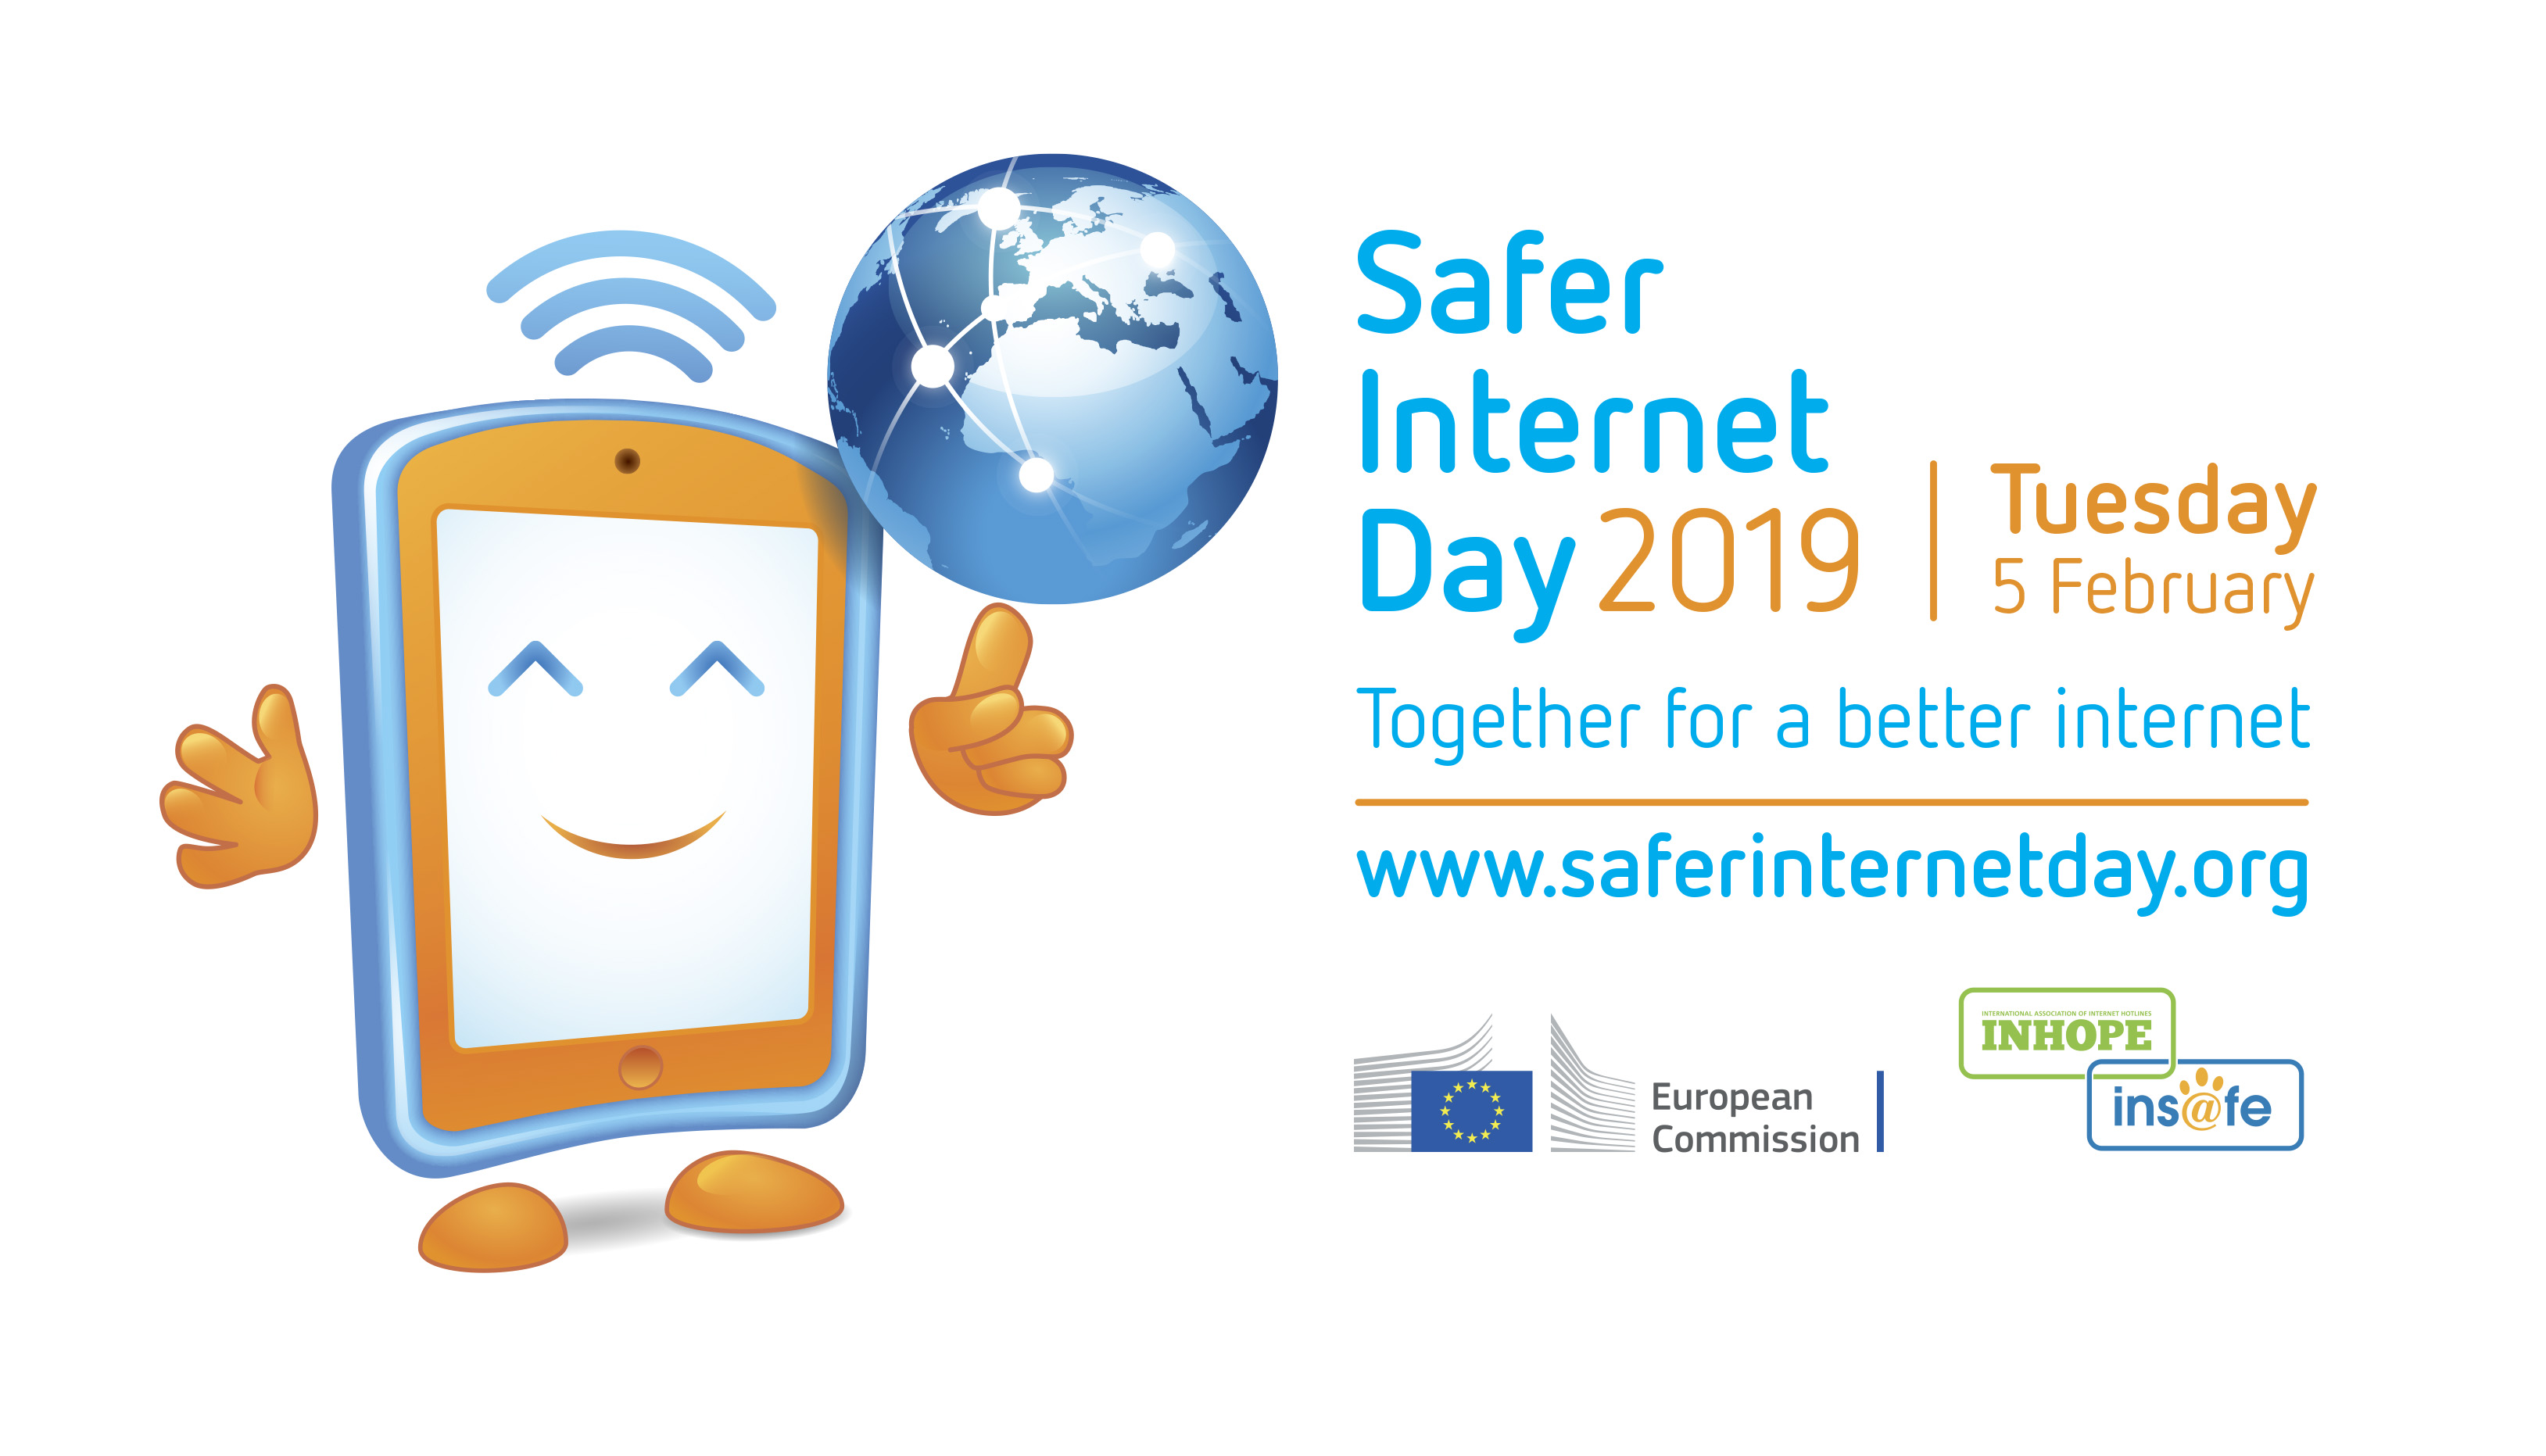 Safer Internet Day (SID) logo - Together for a better internet